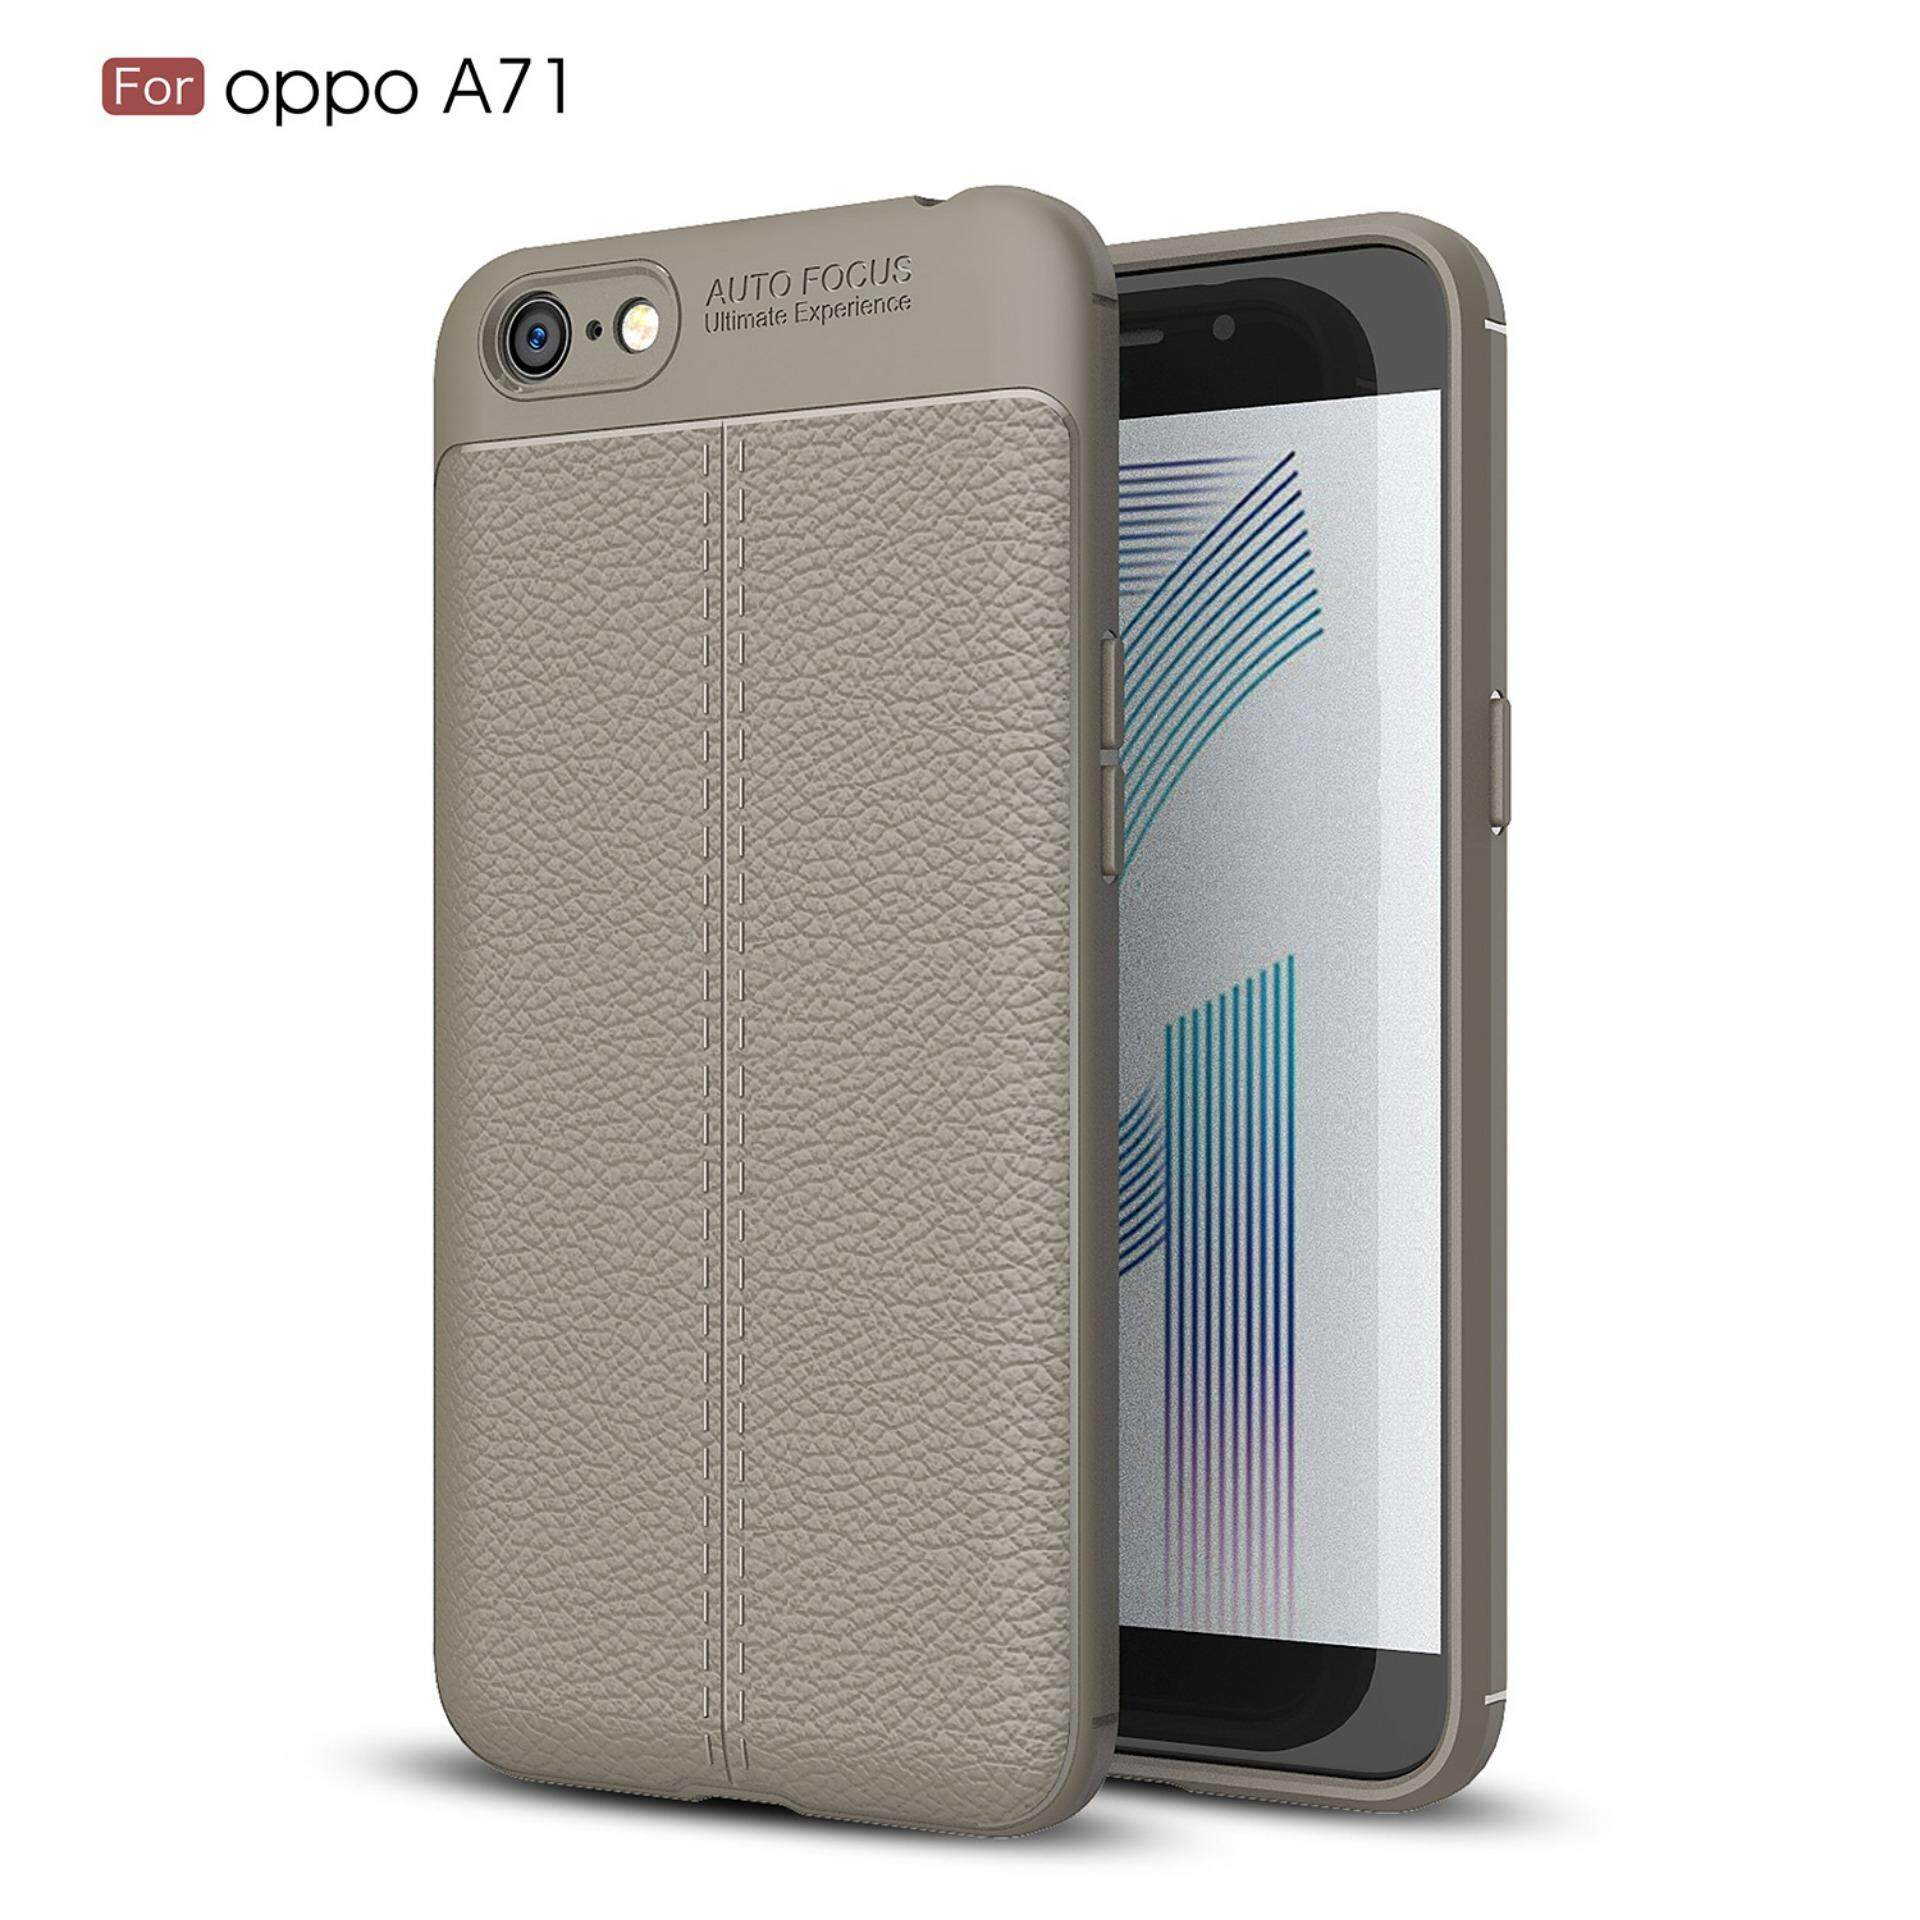 For OPPO A71 360 Degree Protections Ultra Slim Thin TPU Rubber Soft Skin Silicone Protective Phone